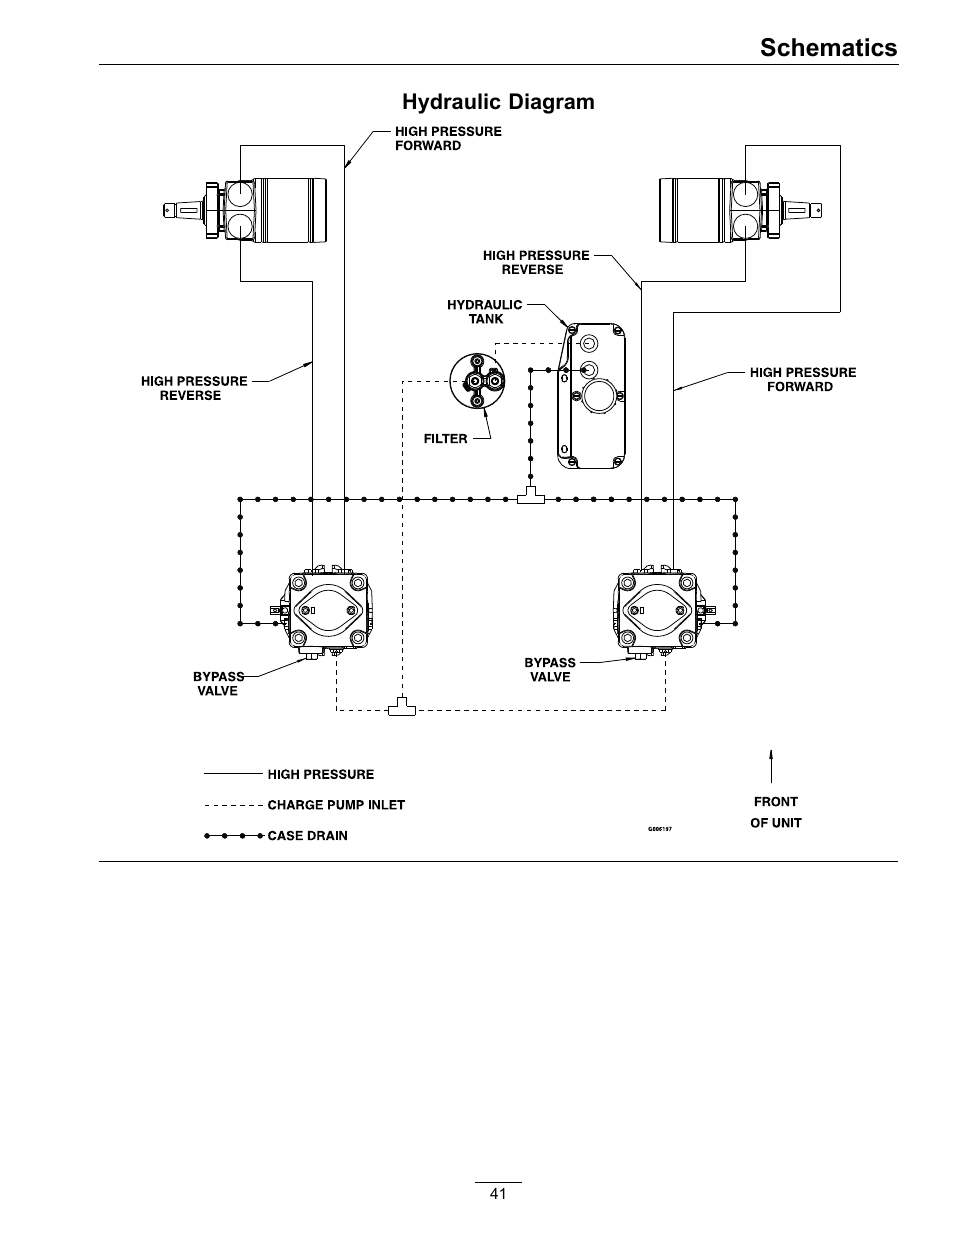 Schematics      Exmark Turf    Tracer    HP 4500358 User    Manual      Page 41  48